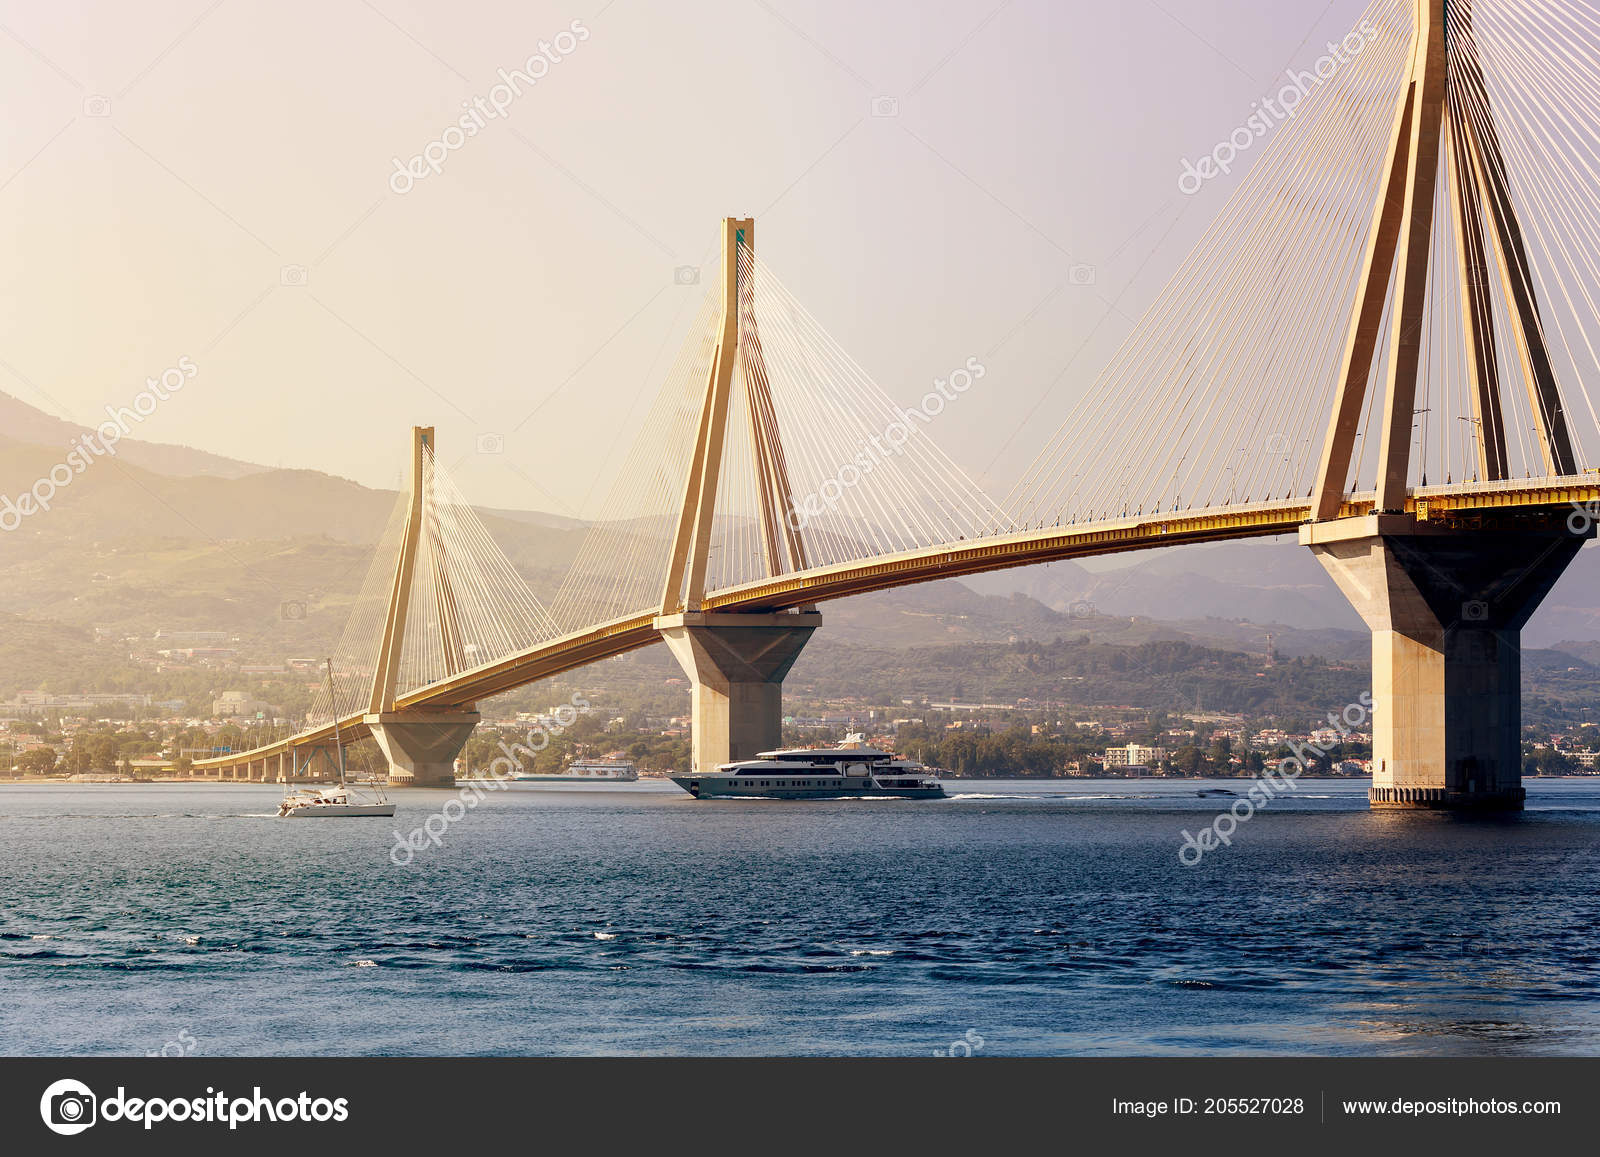 view rion antirion bridge longest cable stayed bridge world